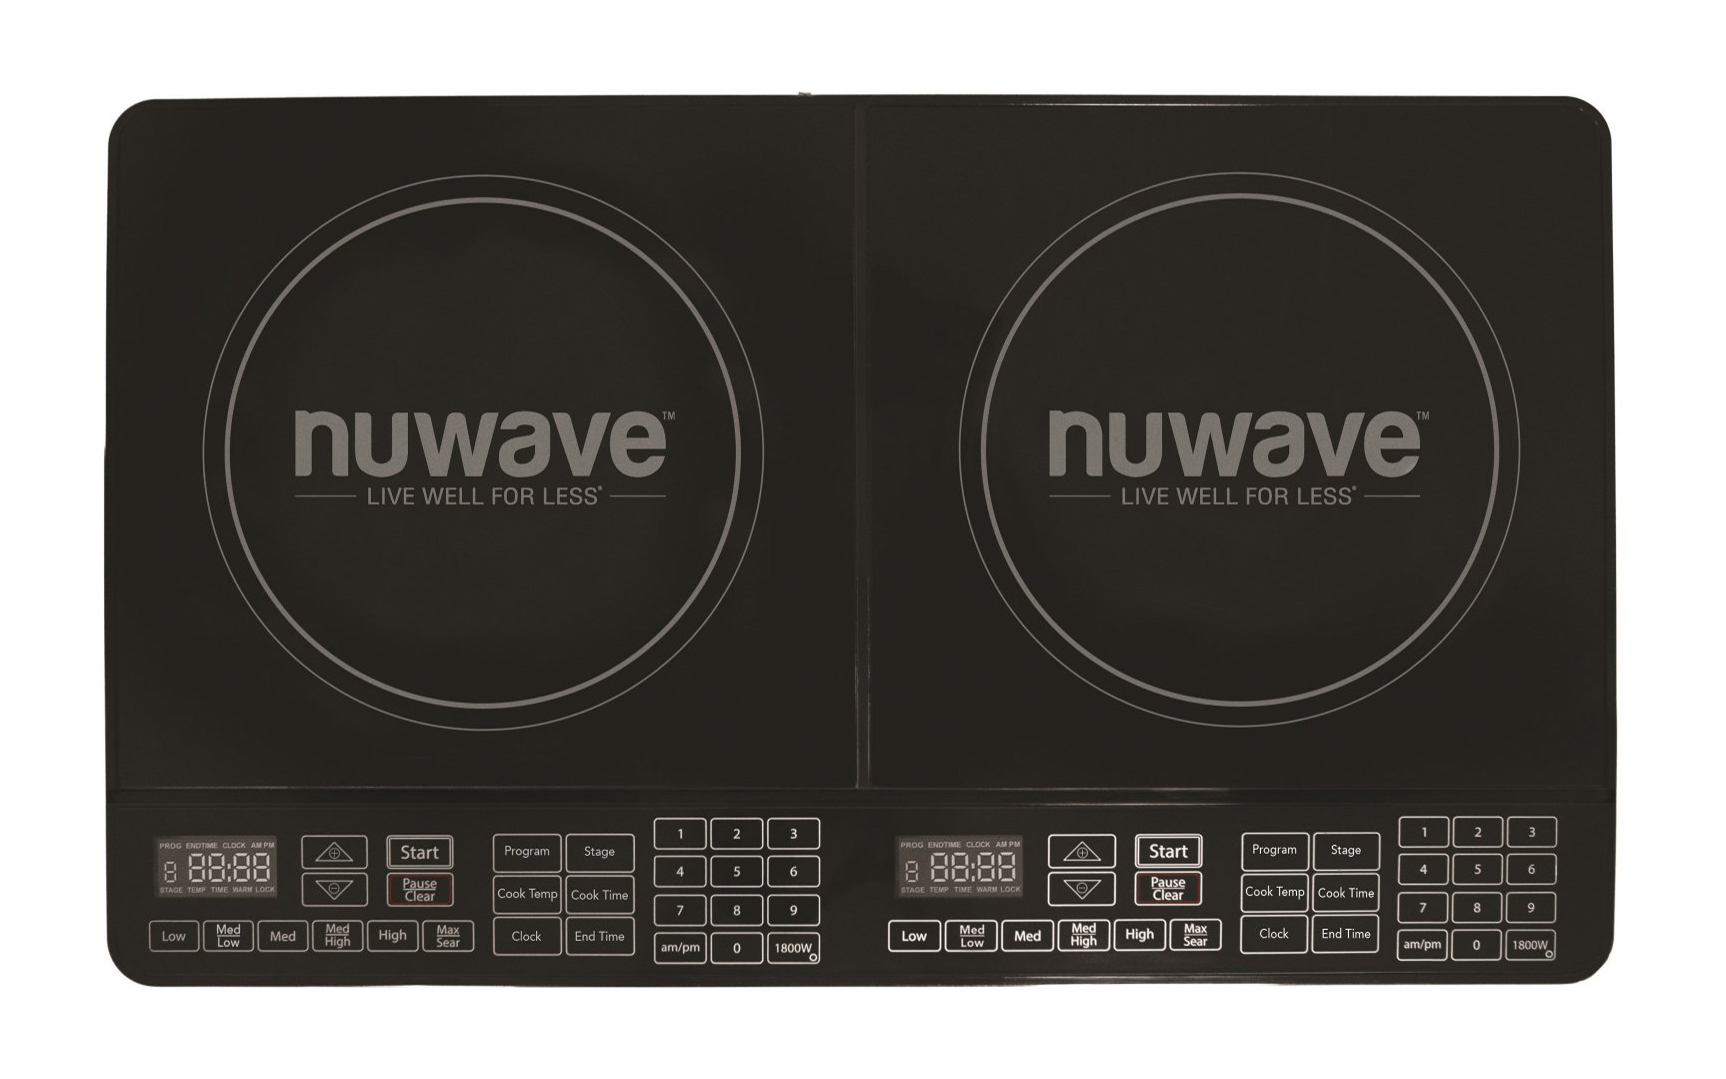 NuWave Double Precision Induction Cooktop Burner